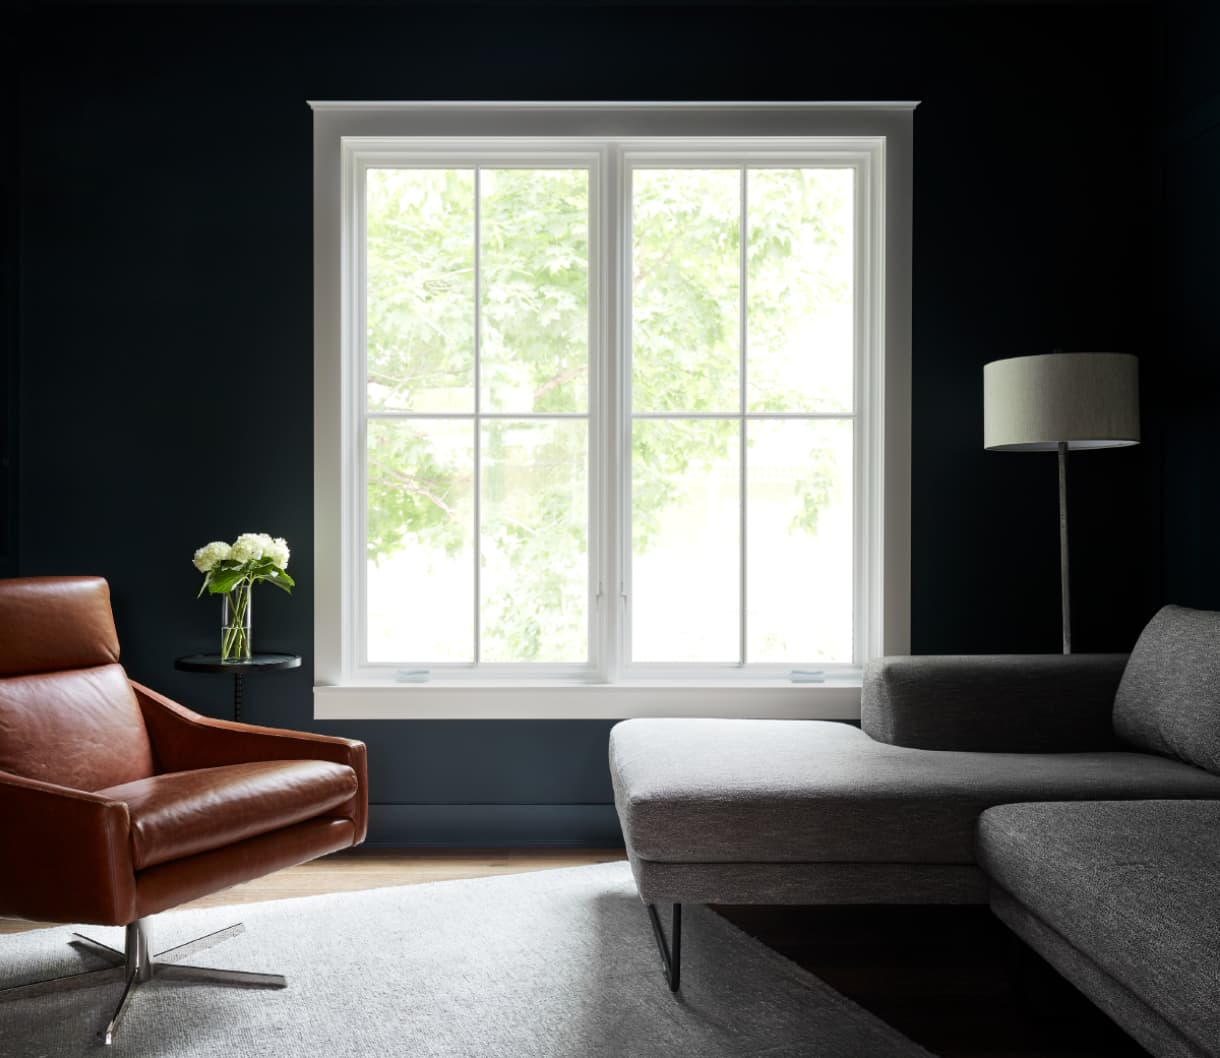 two white casement windows on a black wall